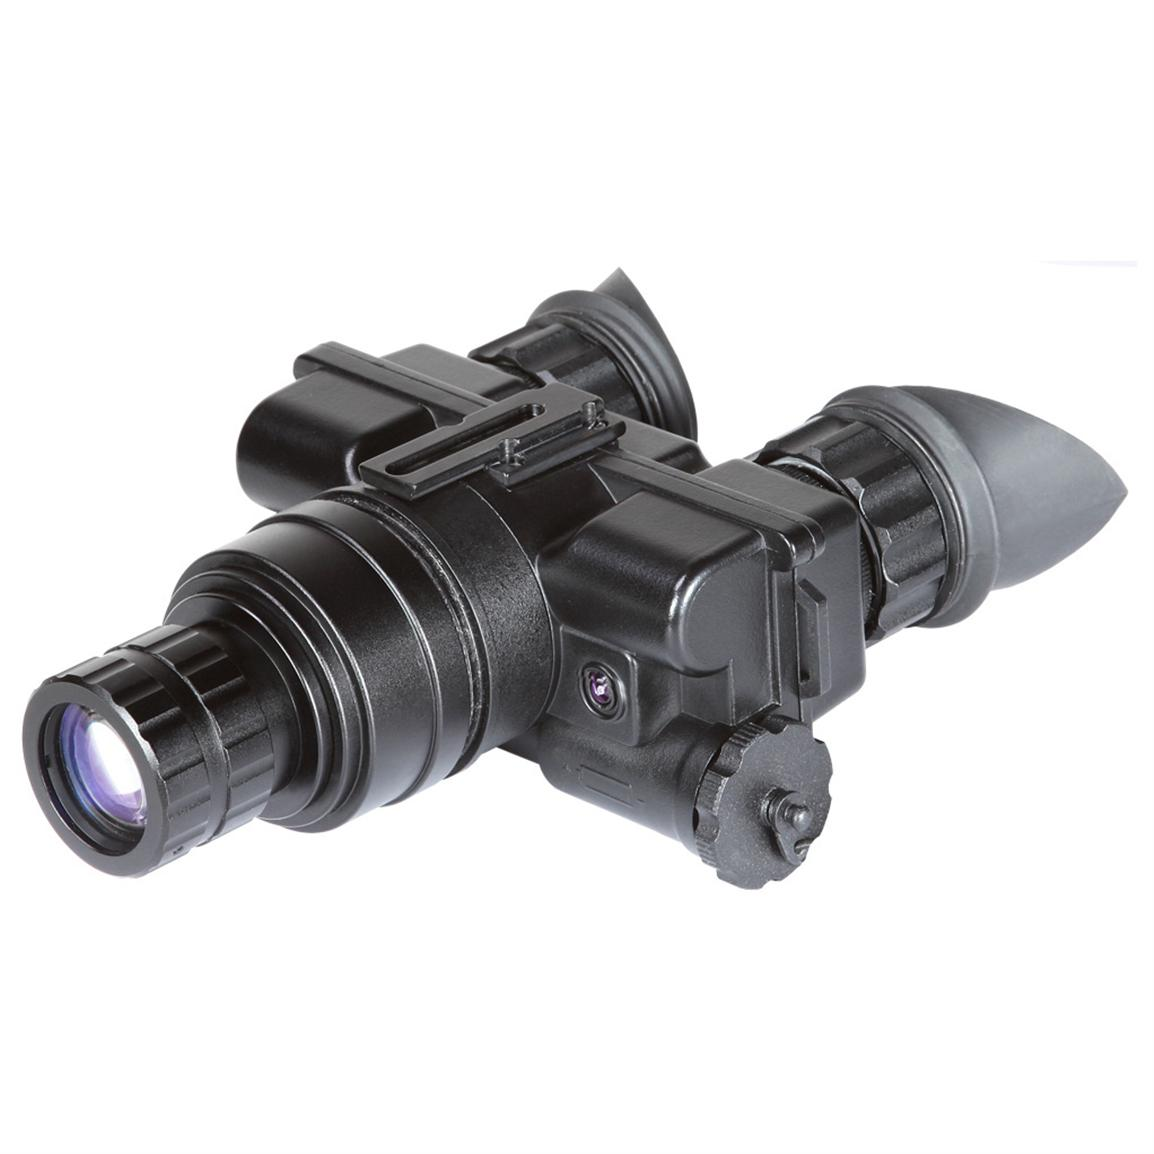 Armasight® Nyx7C-ID Improved Definition Gen 2+ Night Vision Goggles